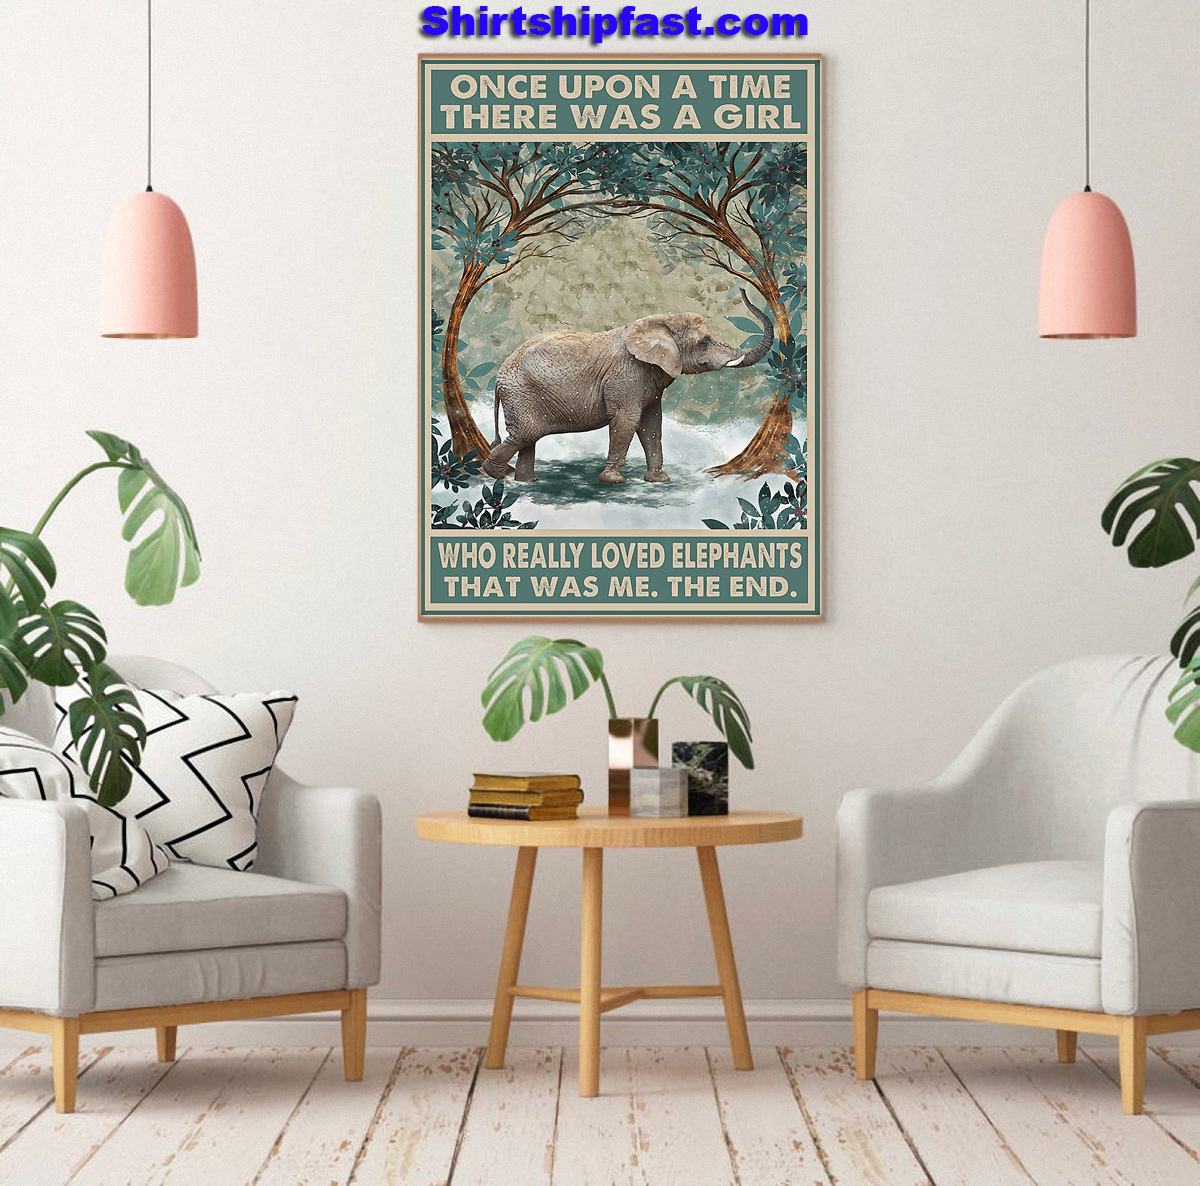 Elephant Once upon a time there was a girl who really loved elephants poster